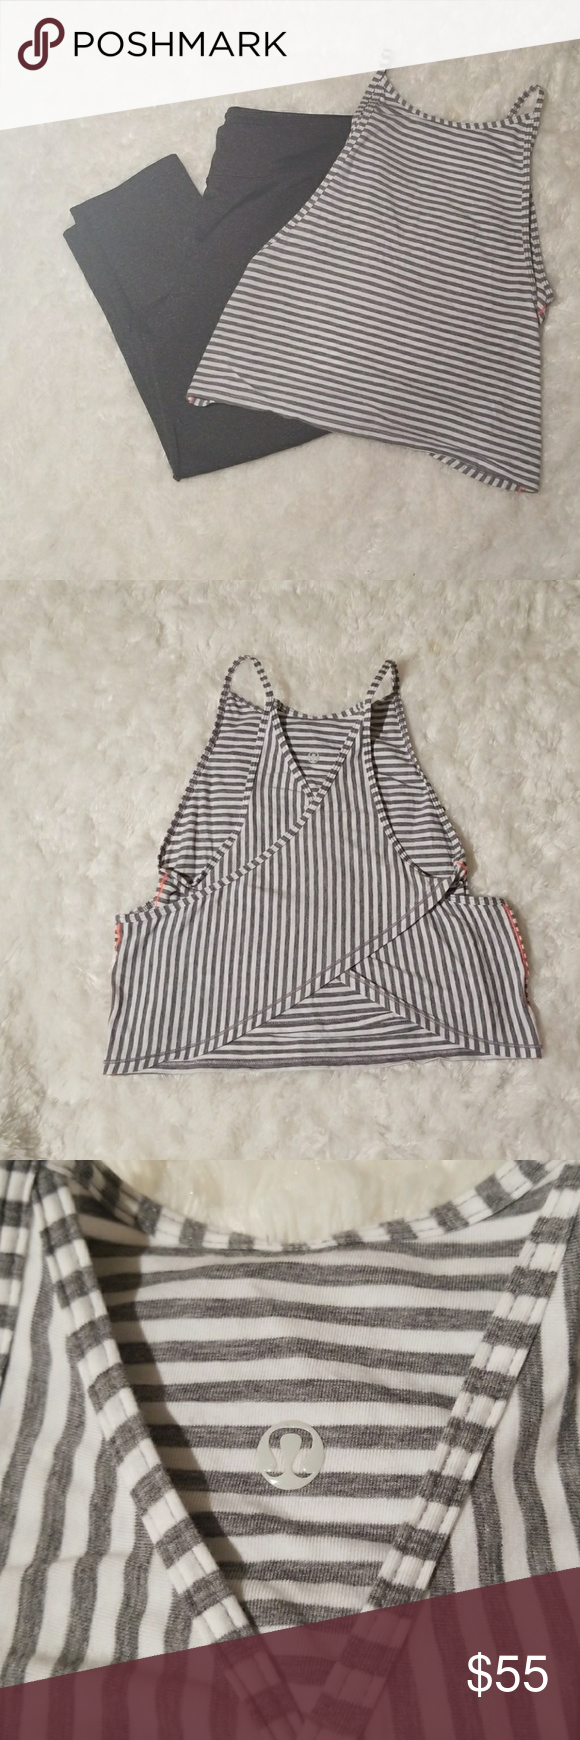 "Lululemon Vita Loca Tank top Lululemon Athletica Vita loca tank, no size dot or rip tag (please refer to measurements) classic stripe white/Heather gray with Neon stitchig. Crop lenght with criss cross detail. Please feel free to ask questions prior to pur chasing. Tha ks for looking. Measurements approx: 17"" strap to bottom hem, 12"" bust,  17"" waist. lululemon athletica Tops"